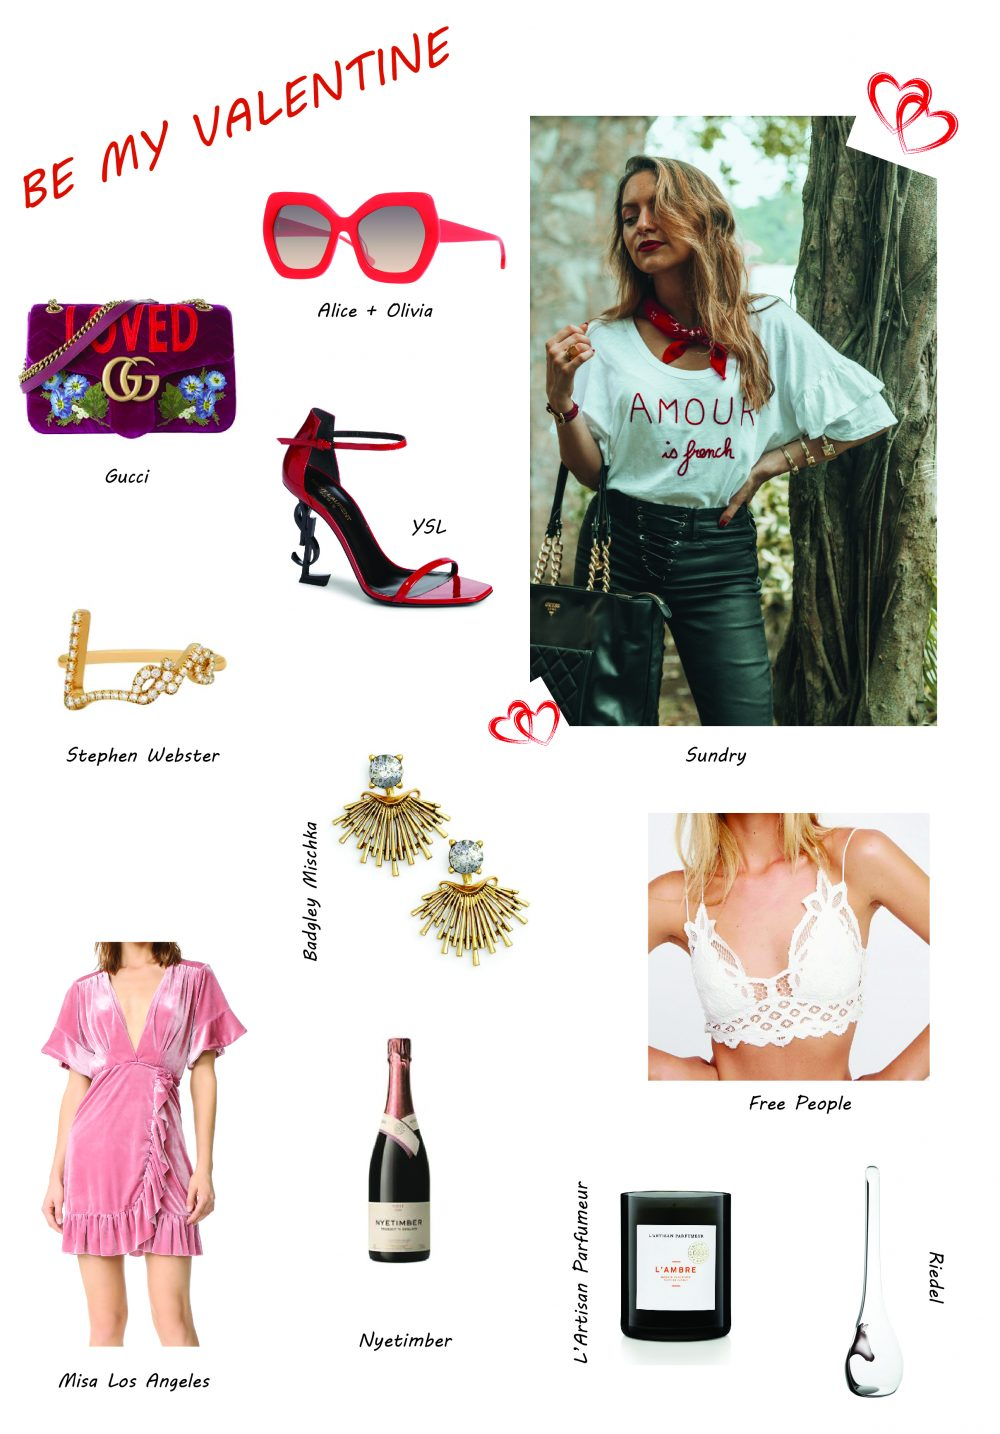 Whitney's Wonderland UK Top Fashion and Lifestyle Blogger shares her Top 10 Valentine's Day Gift Ideas for Her you won't find anywhere else!